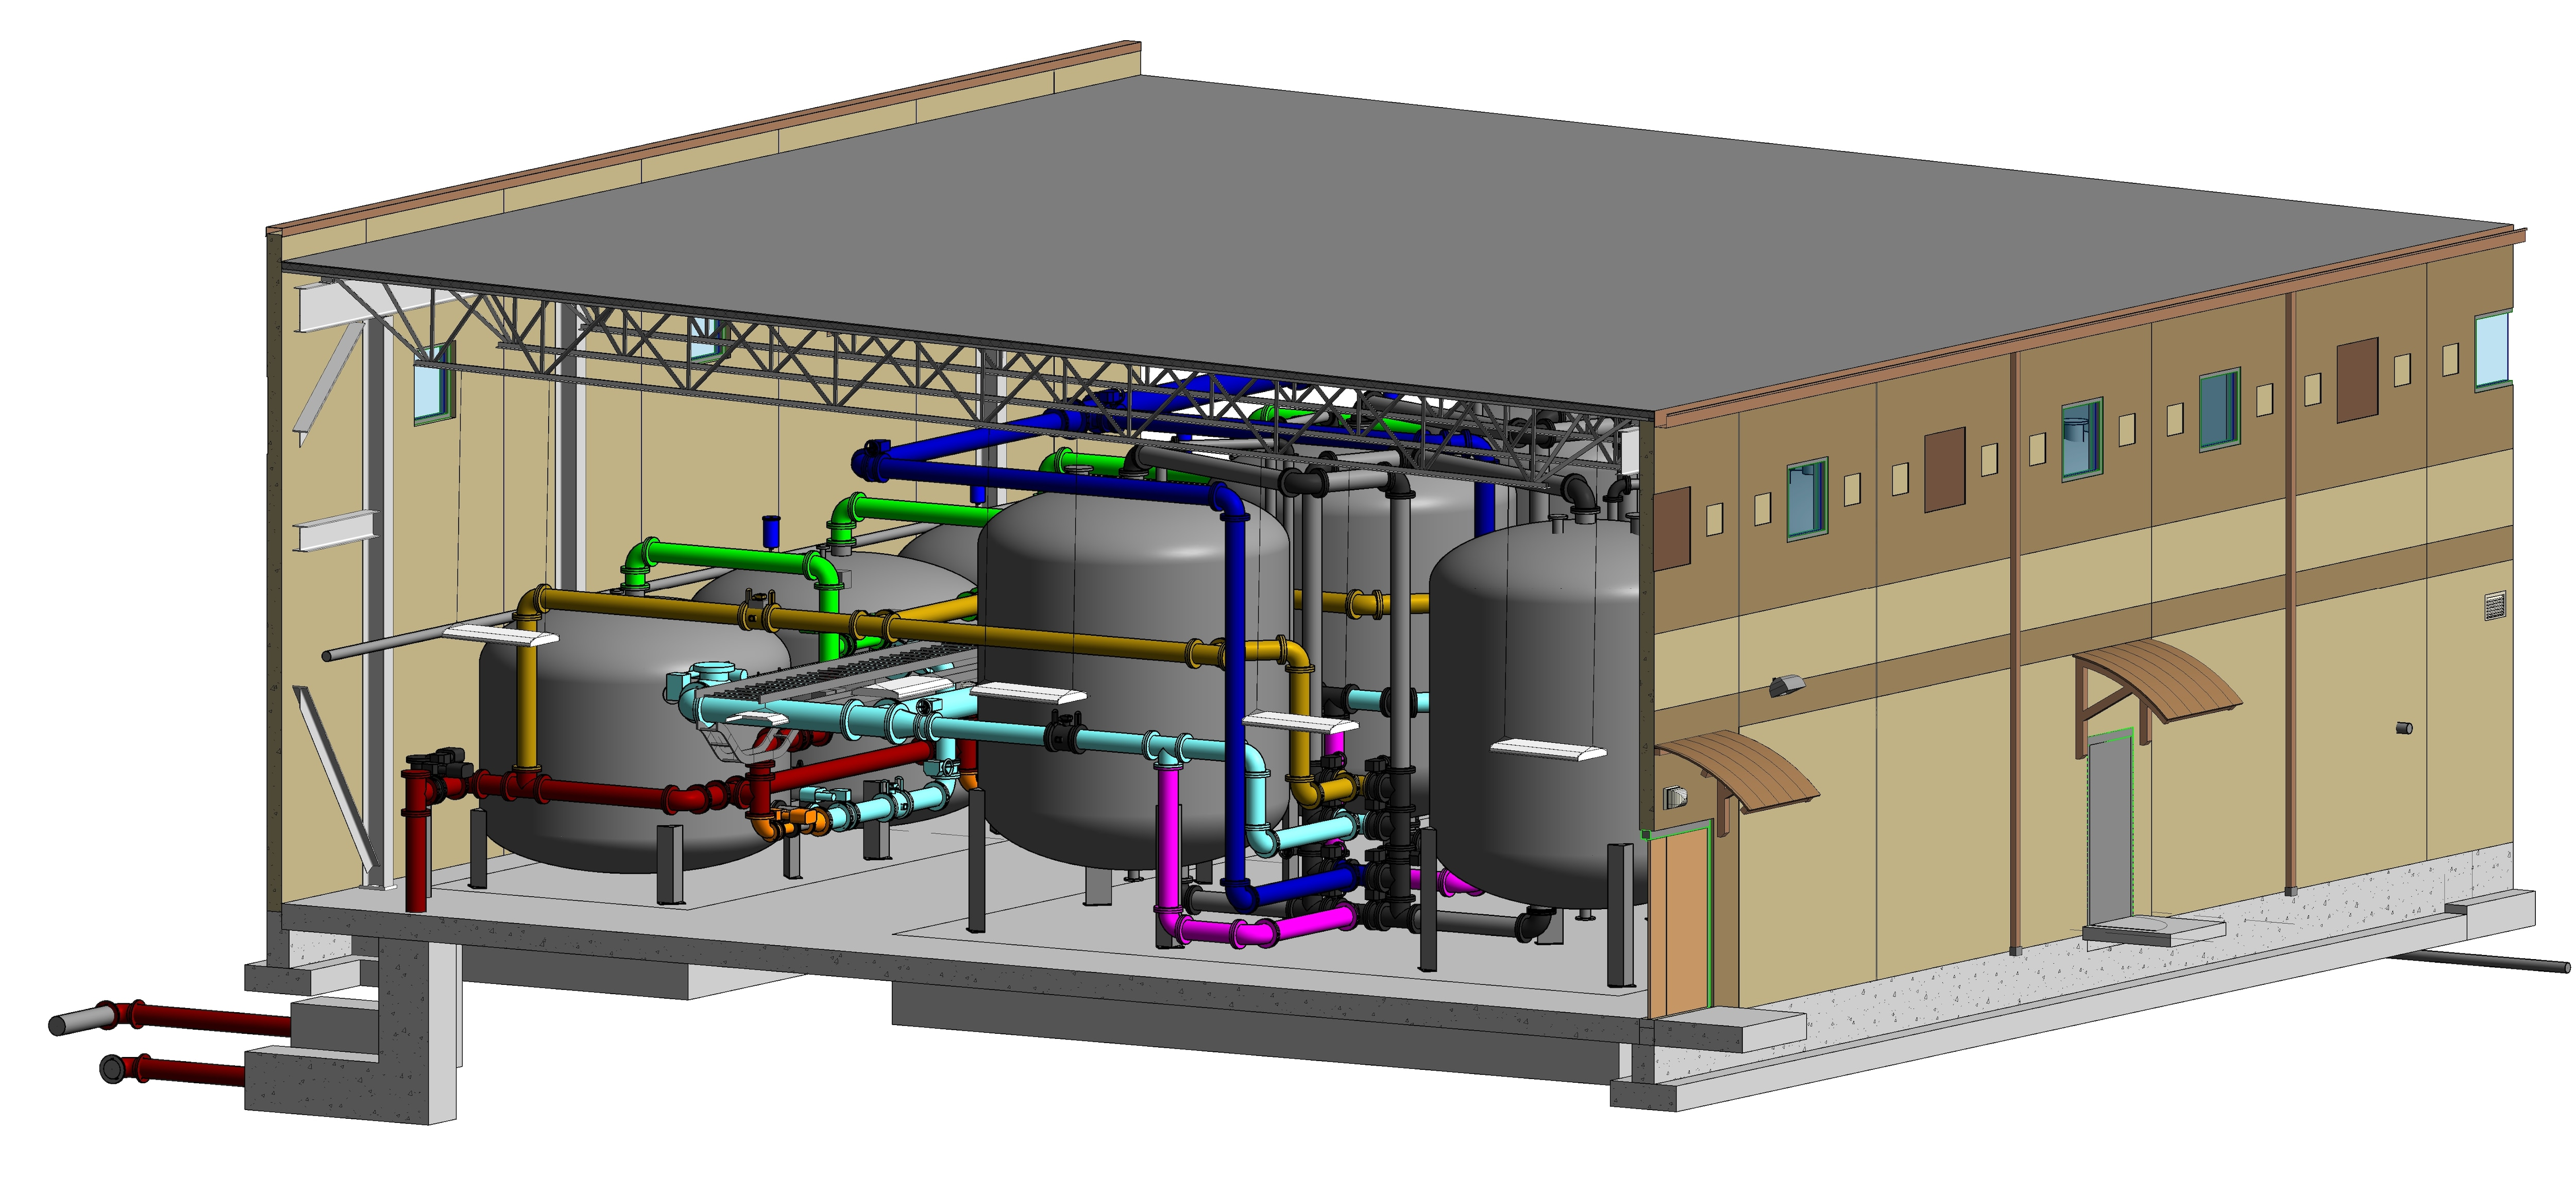 Bim For Plant Design And Engineering Autodesk